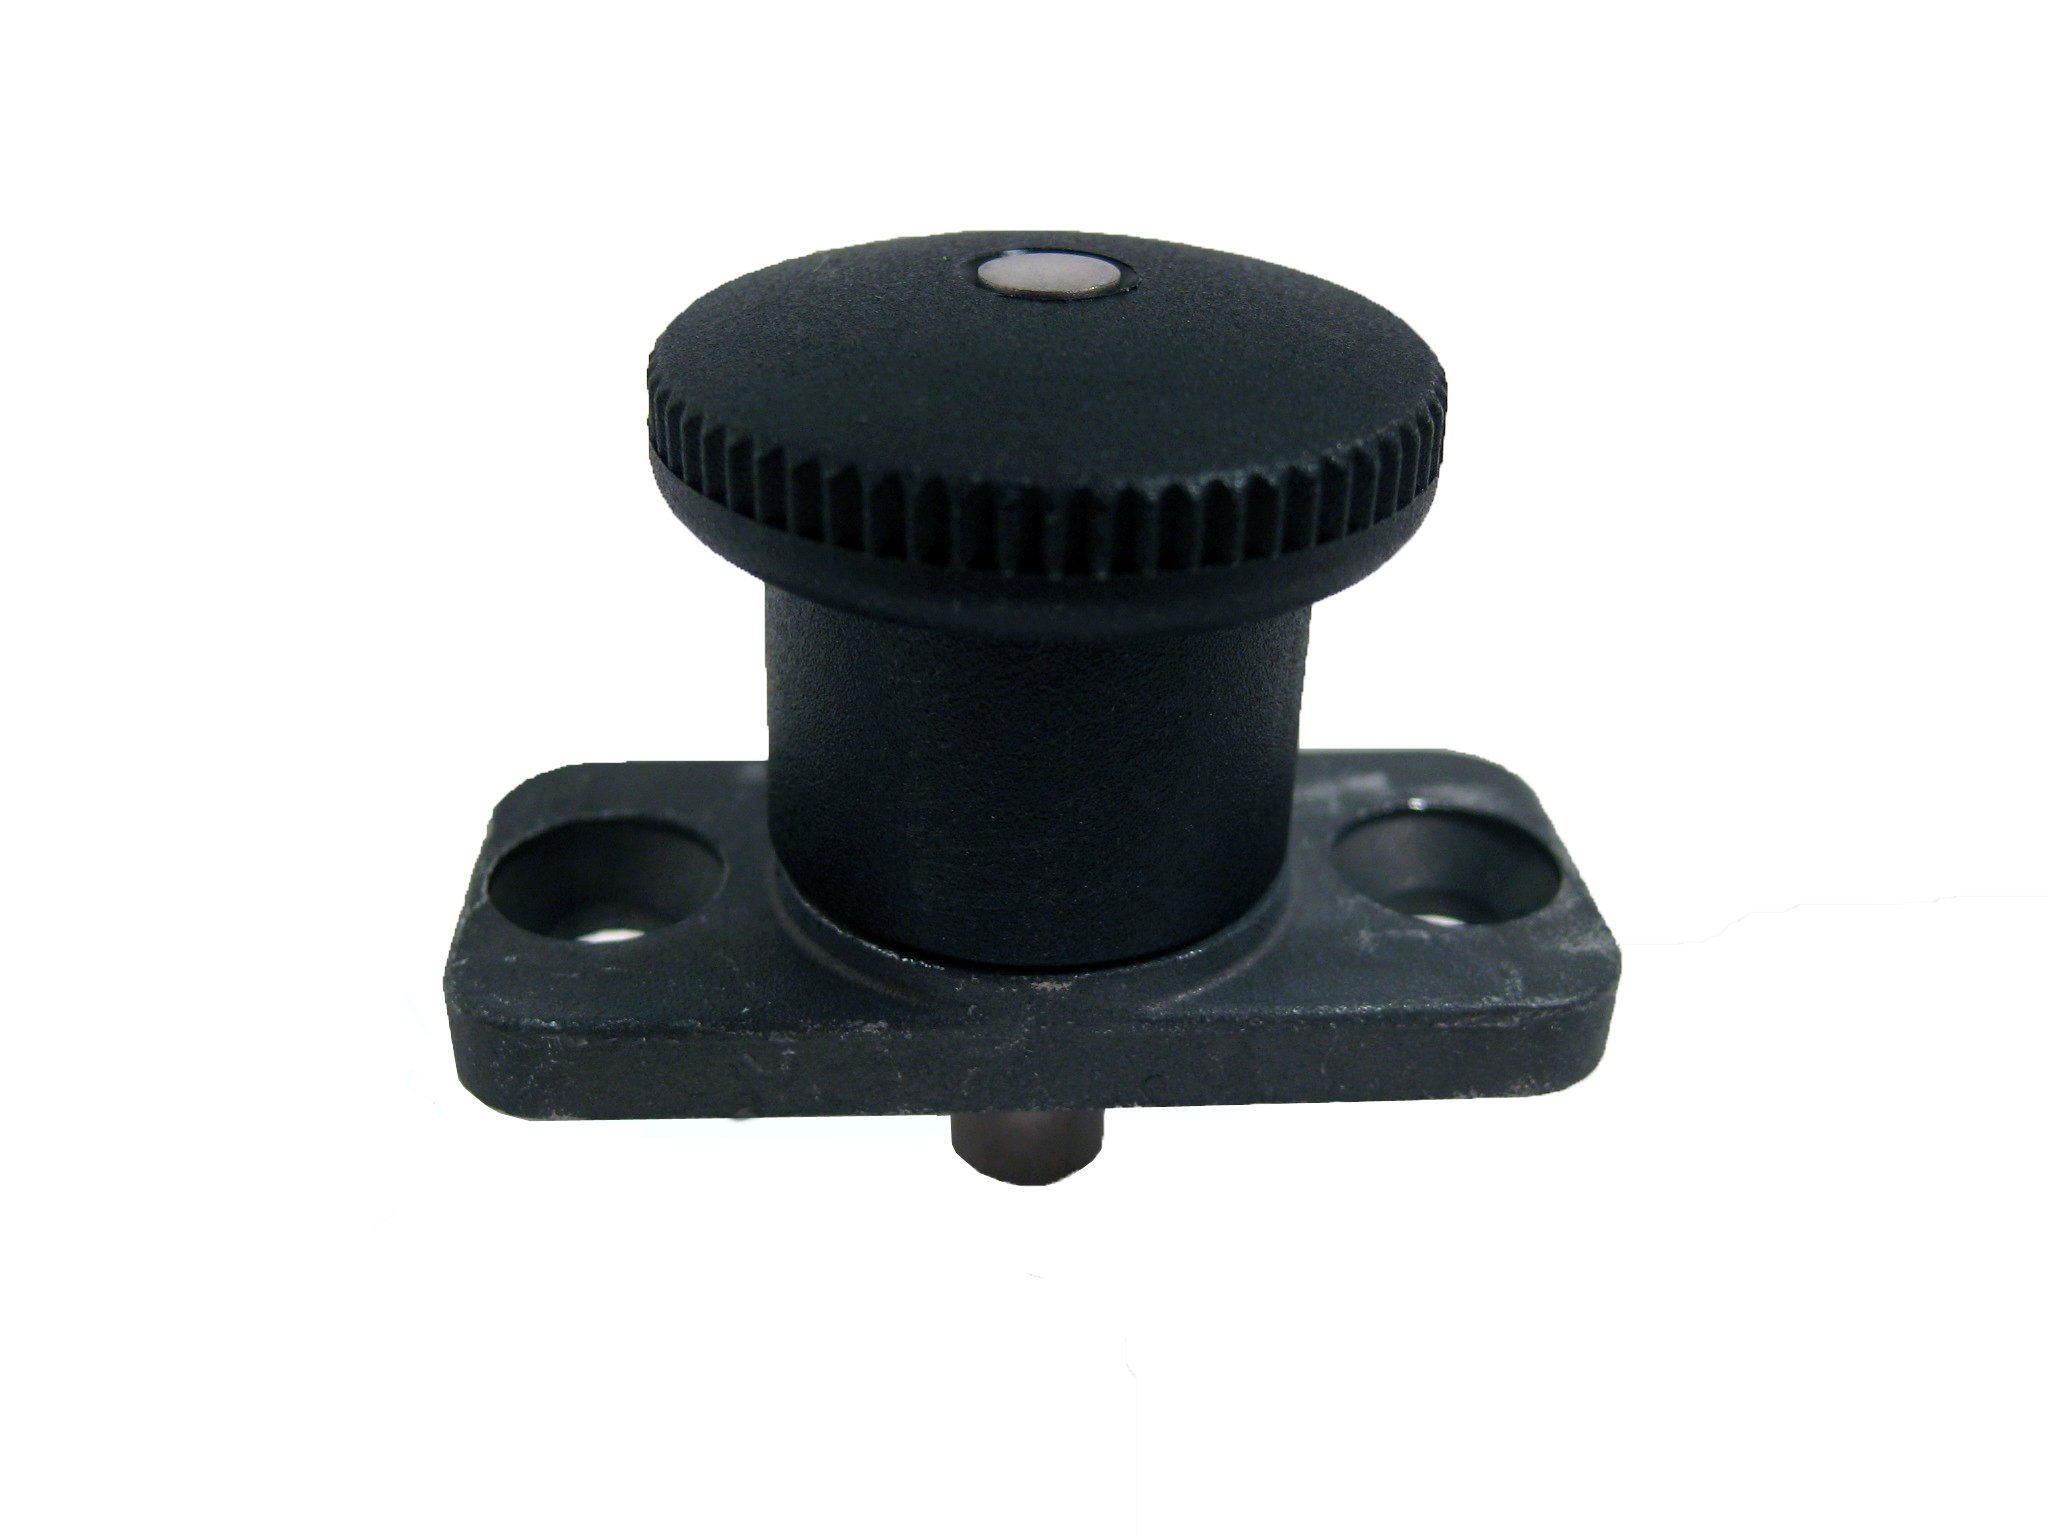 GN 822.8 Series Steel Lock-out Type C Metric Size Plate Mount Mini Indexing Plunger, 4mm Item Diameter, 10mm Retraction Length